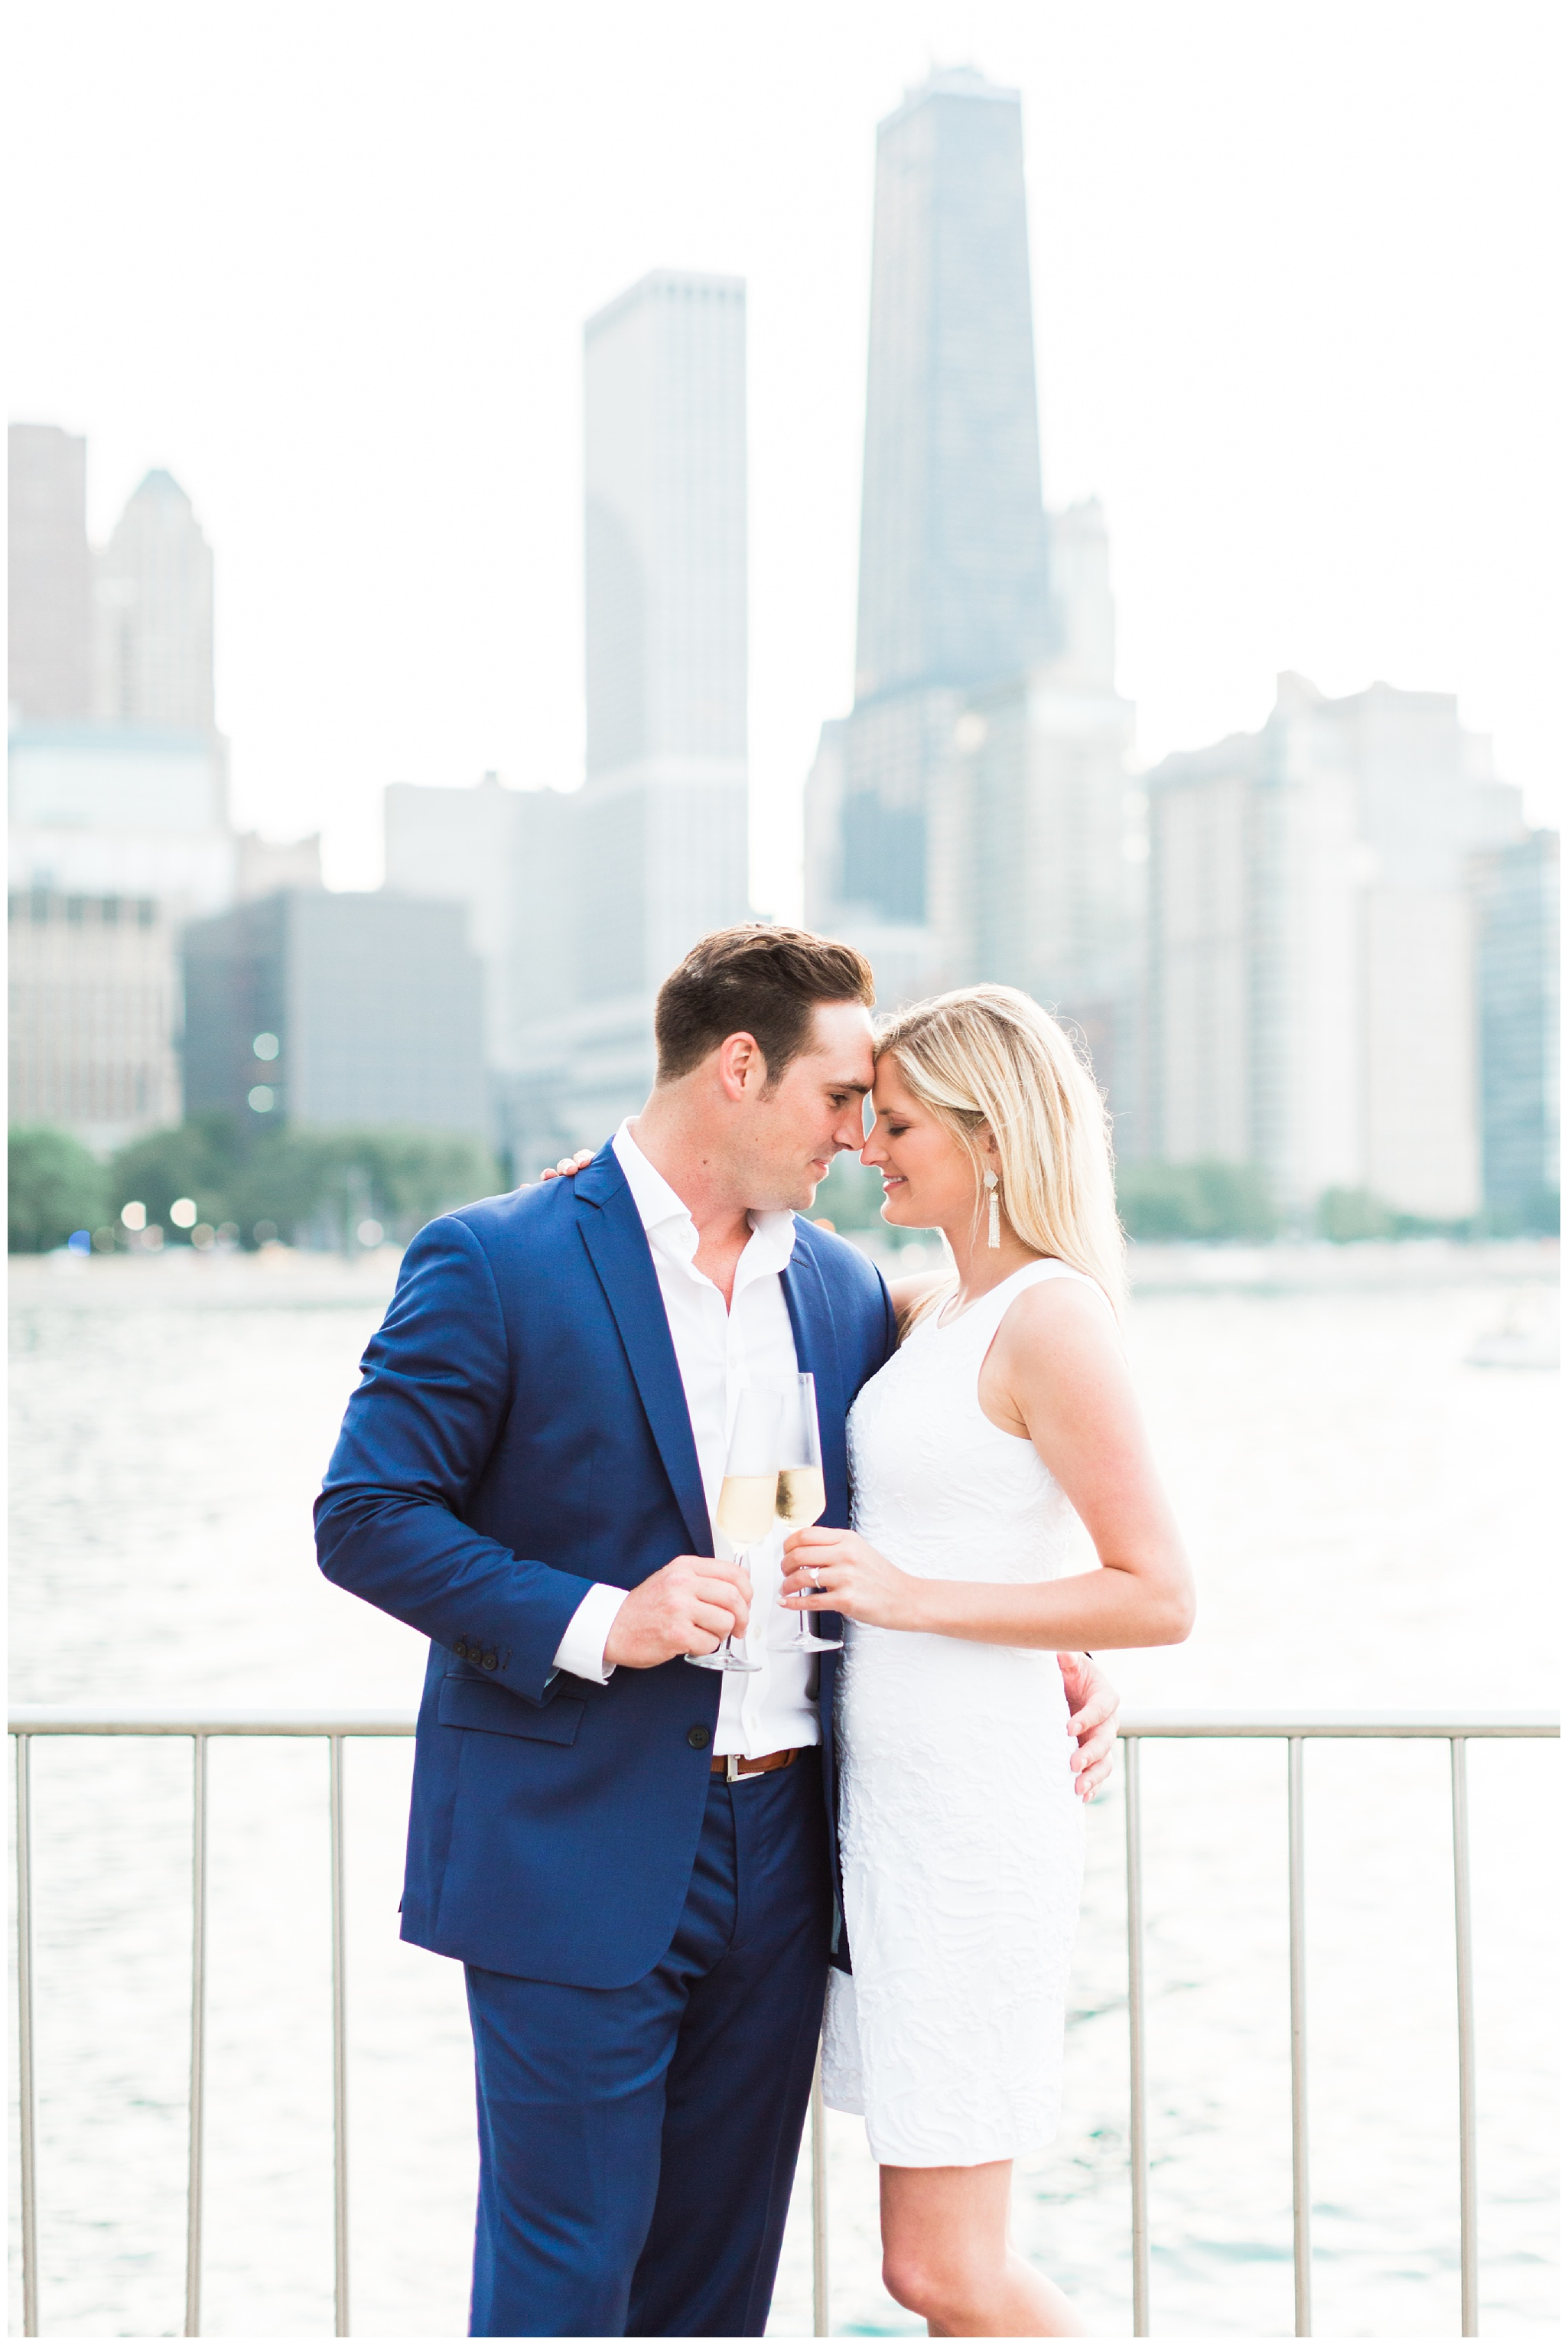 M&T_ChicagoEngagementSession__0196.jpg